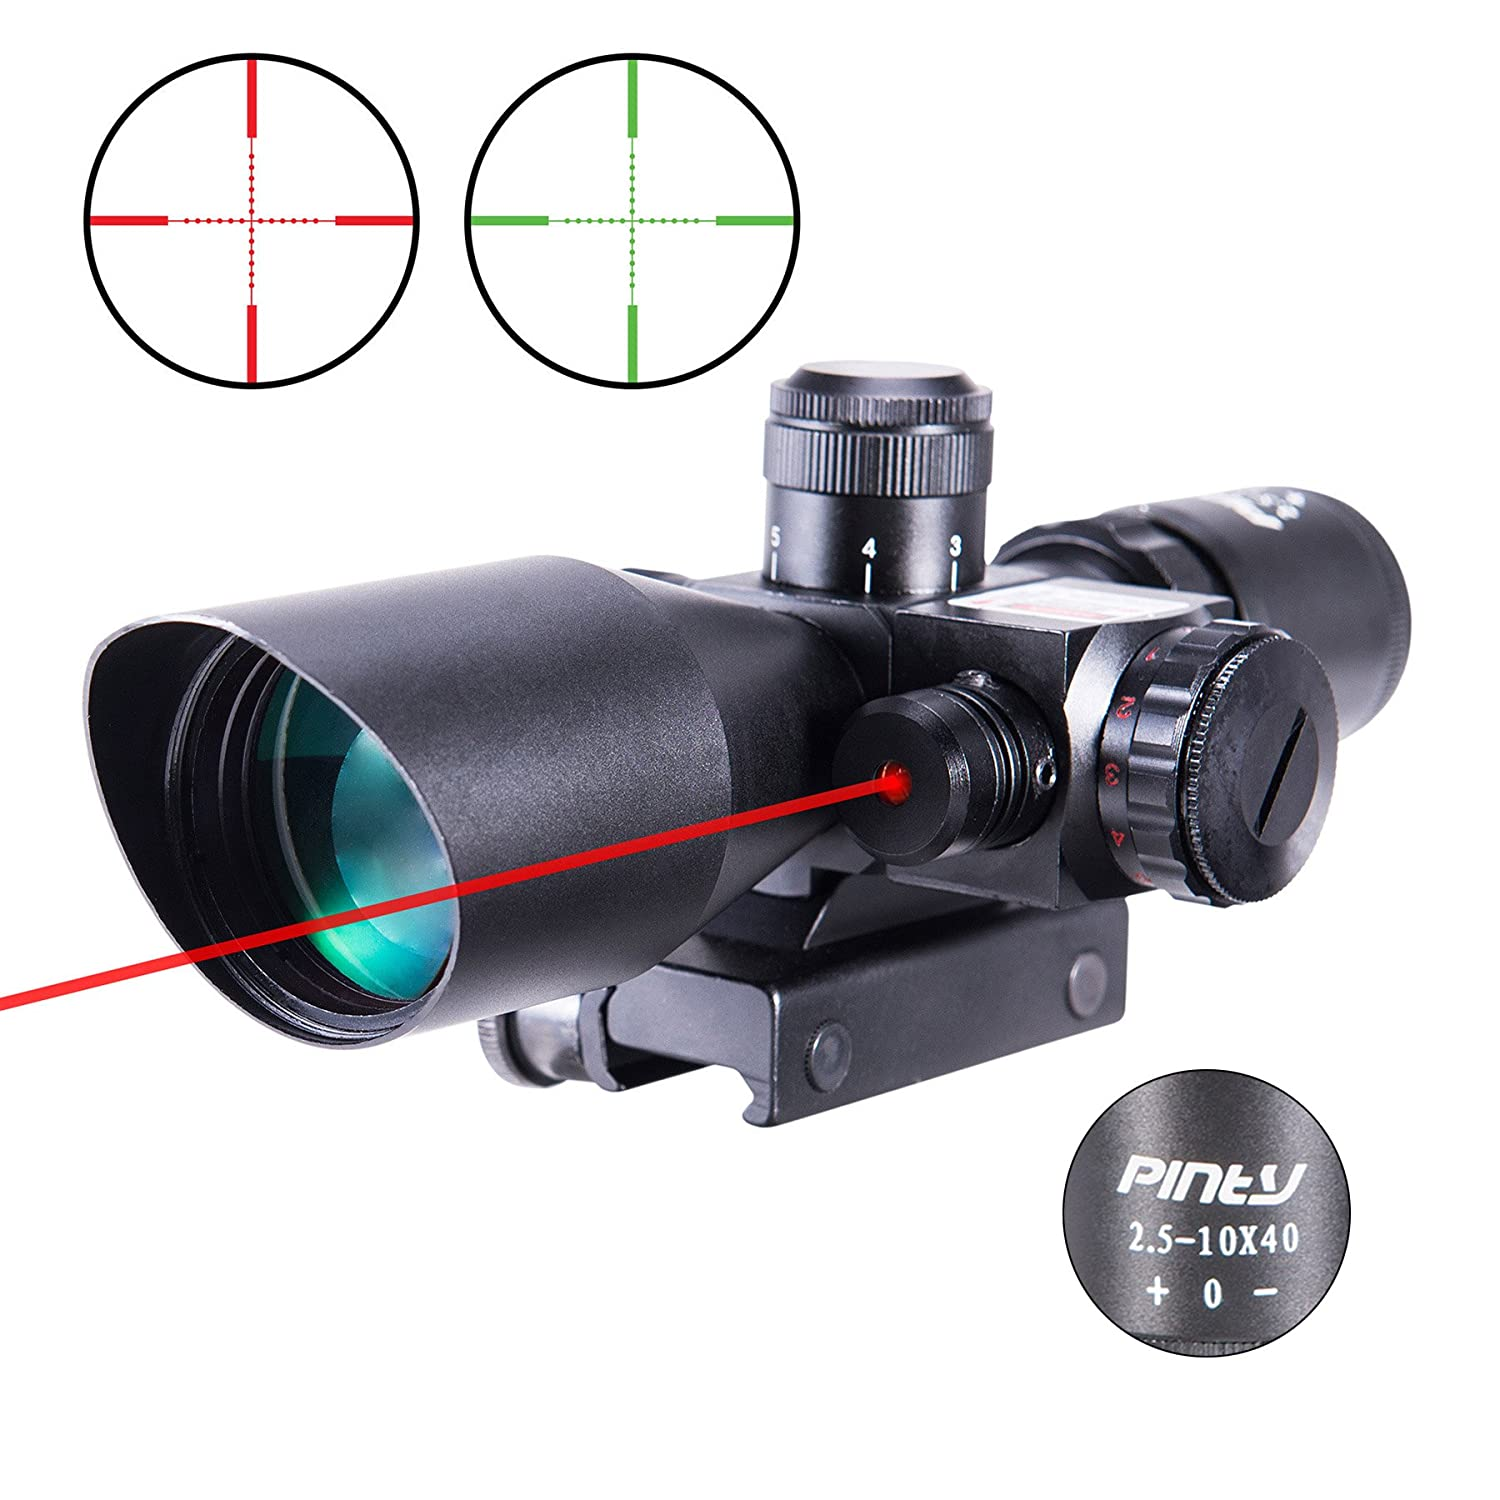 5.Pinty 2.5-10x40 Red Green Illuminated Mil-dot Tactical Rifle Scope